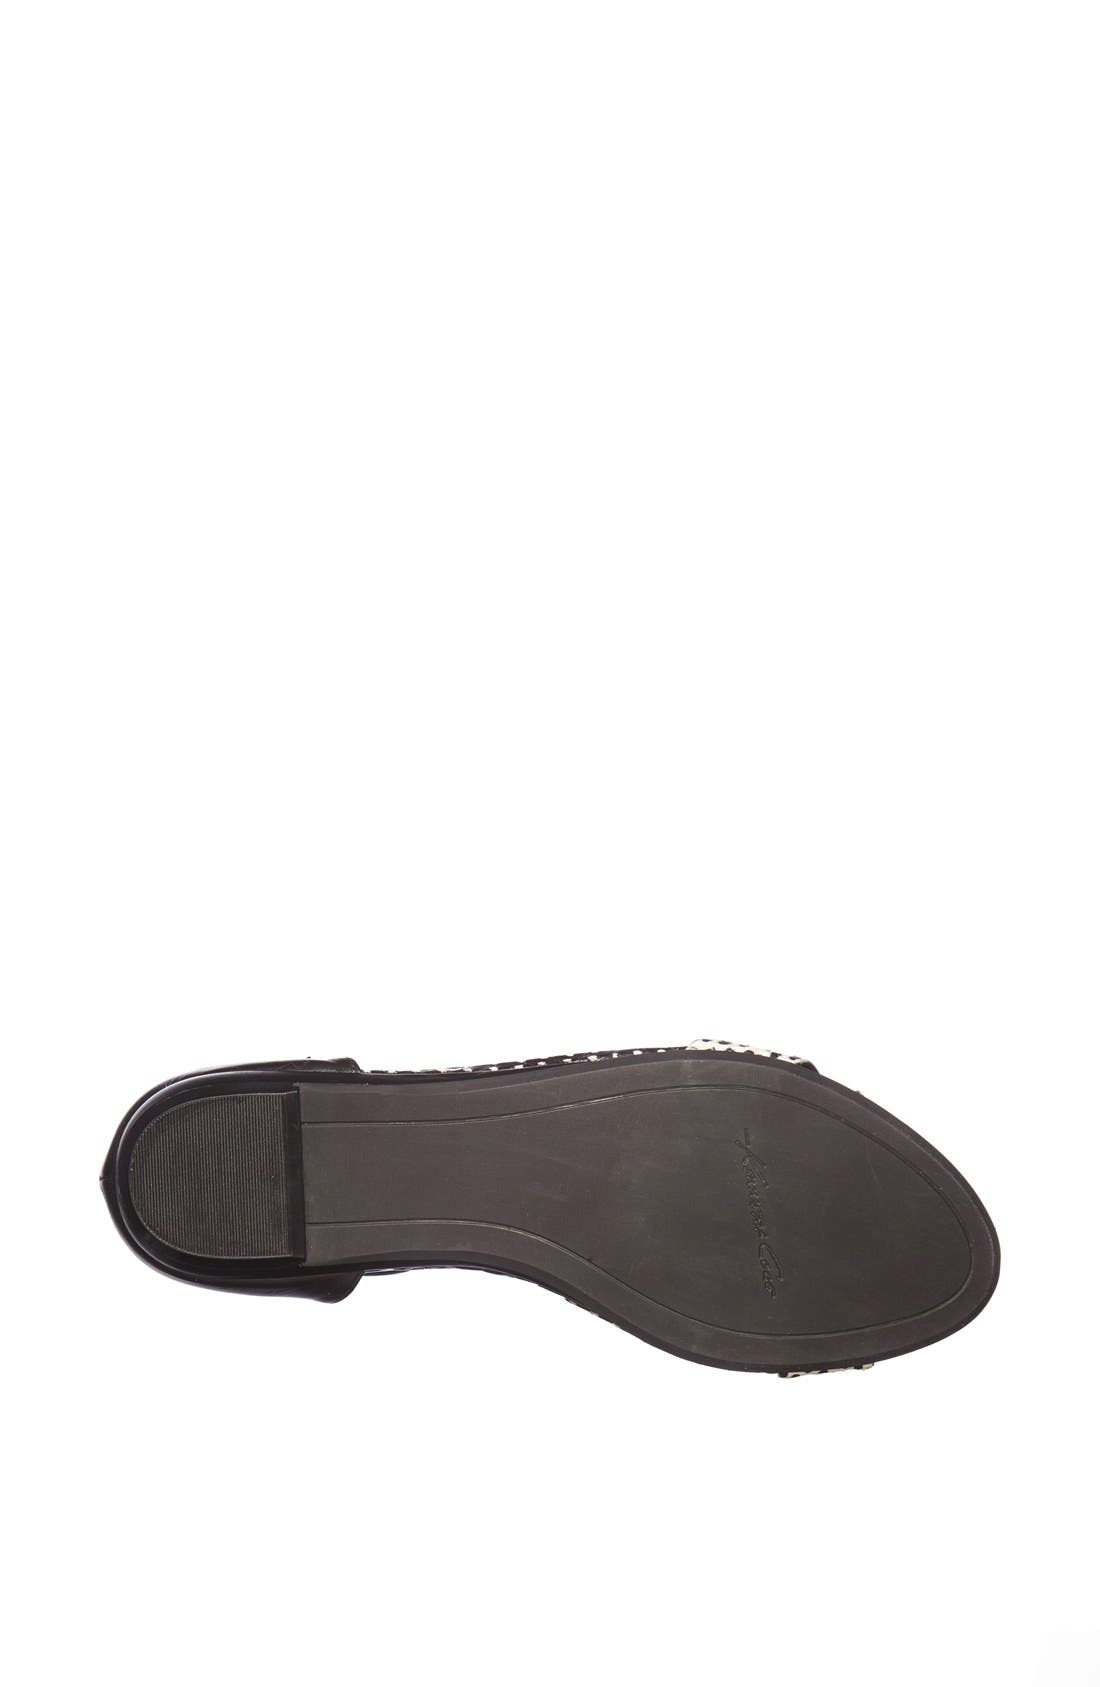 Alternate Image 4  - Kenneth Cole New York 'Essex' Sandal